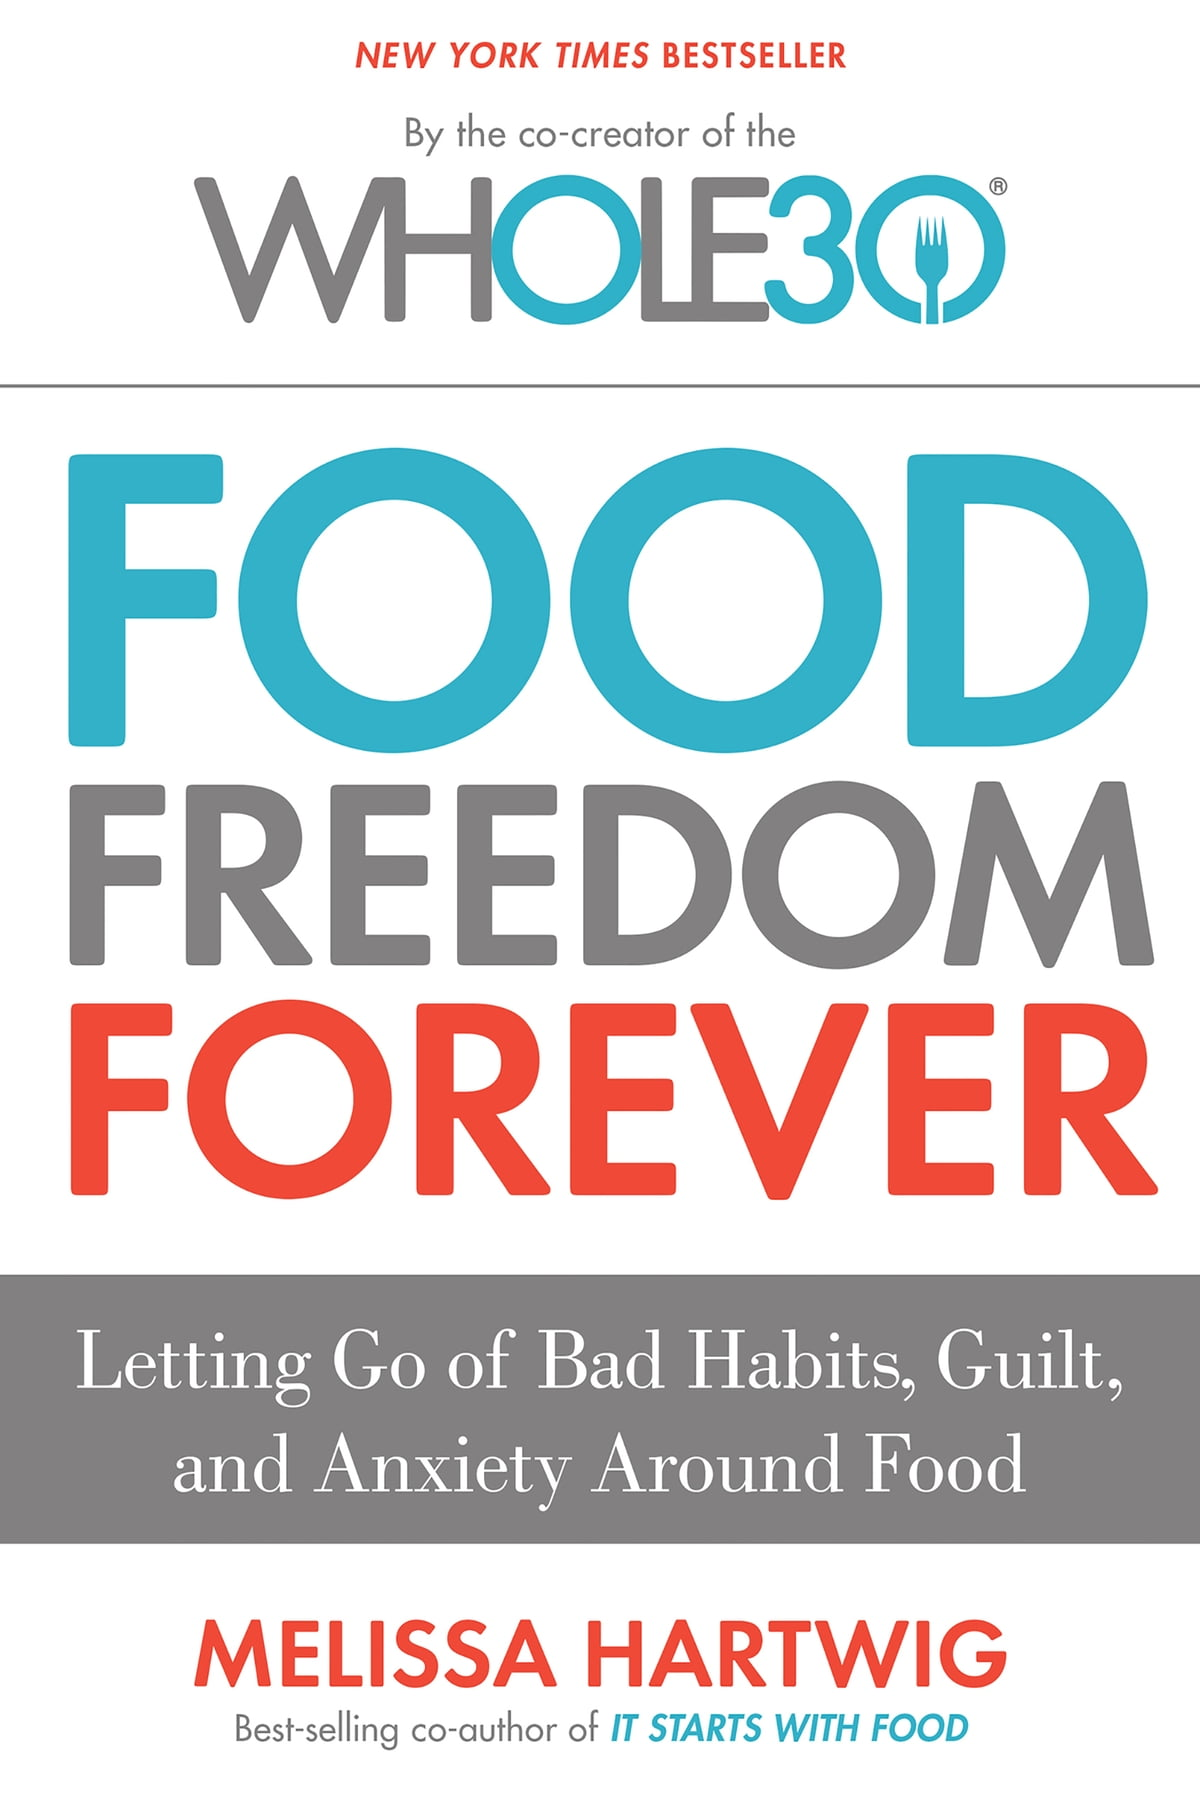 Food Freedom Forever Ebook By Melissa Hartwig  9780544838307  Rakuten Kobo